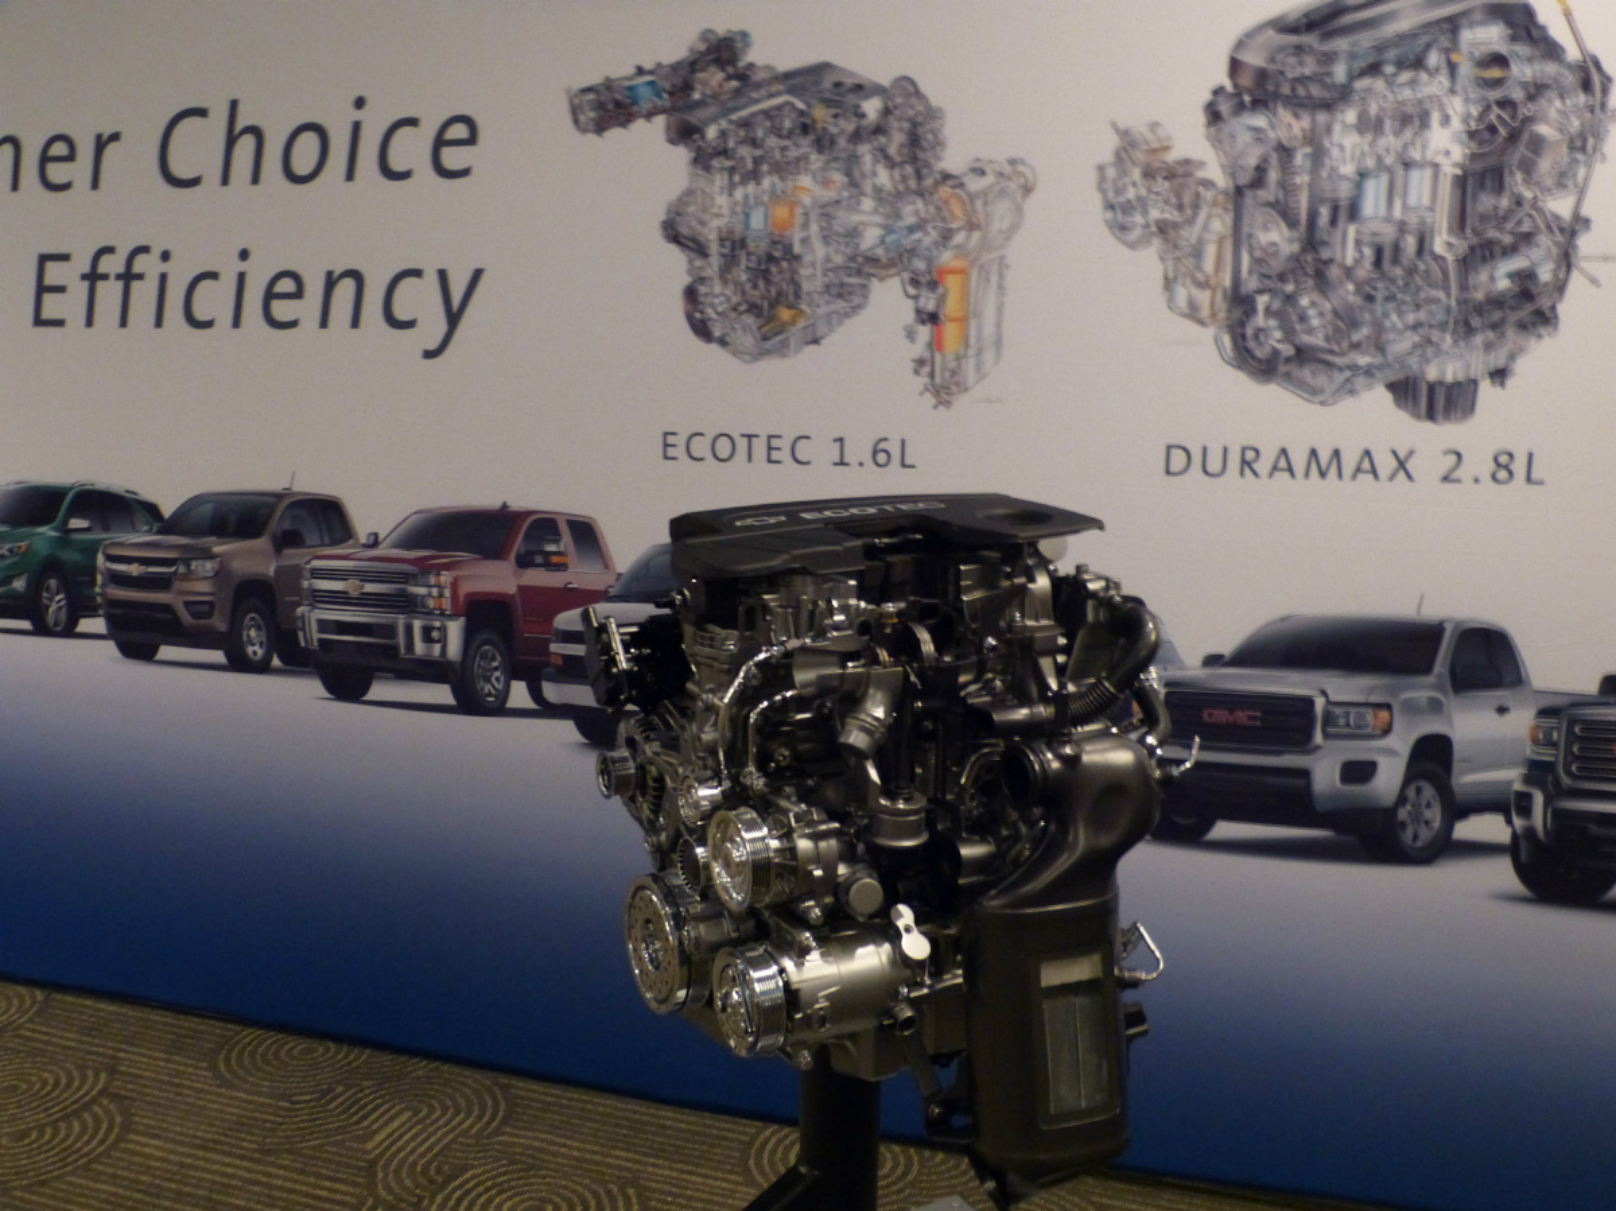 GM Diesel engines